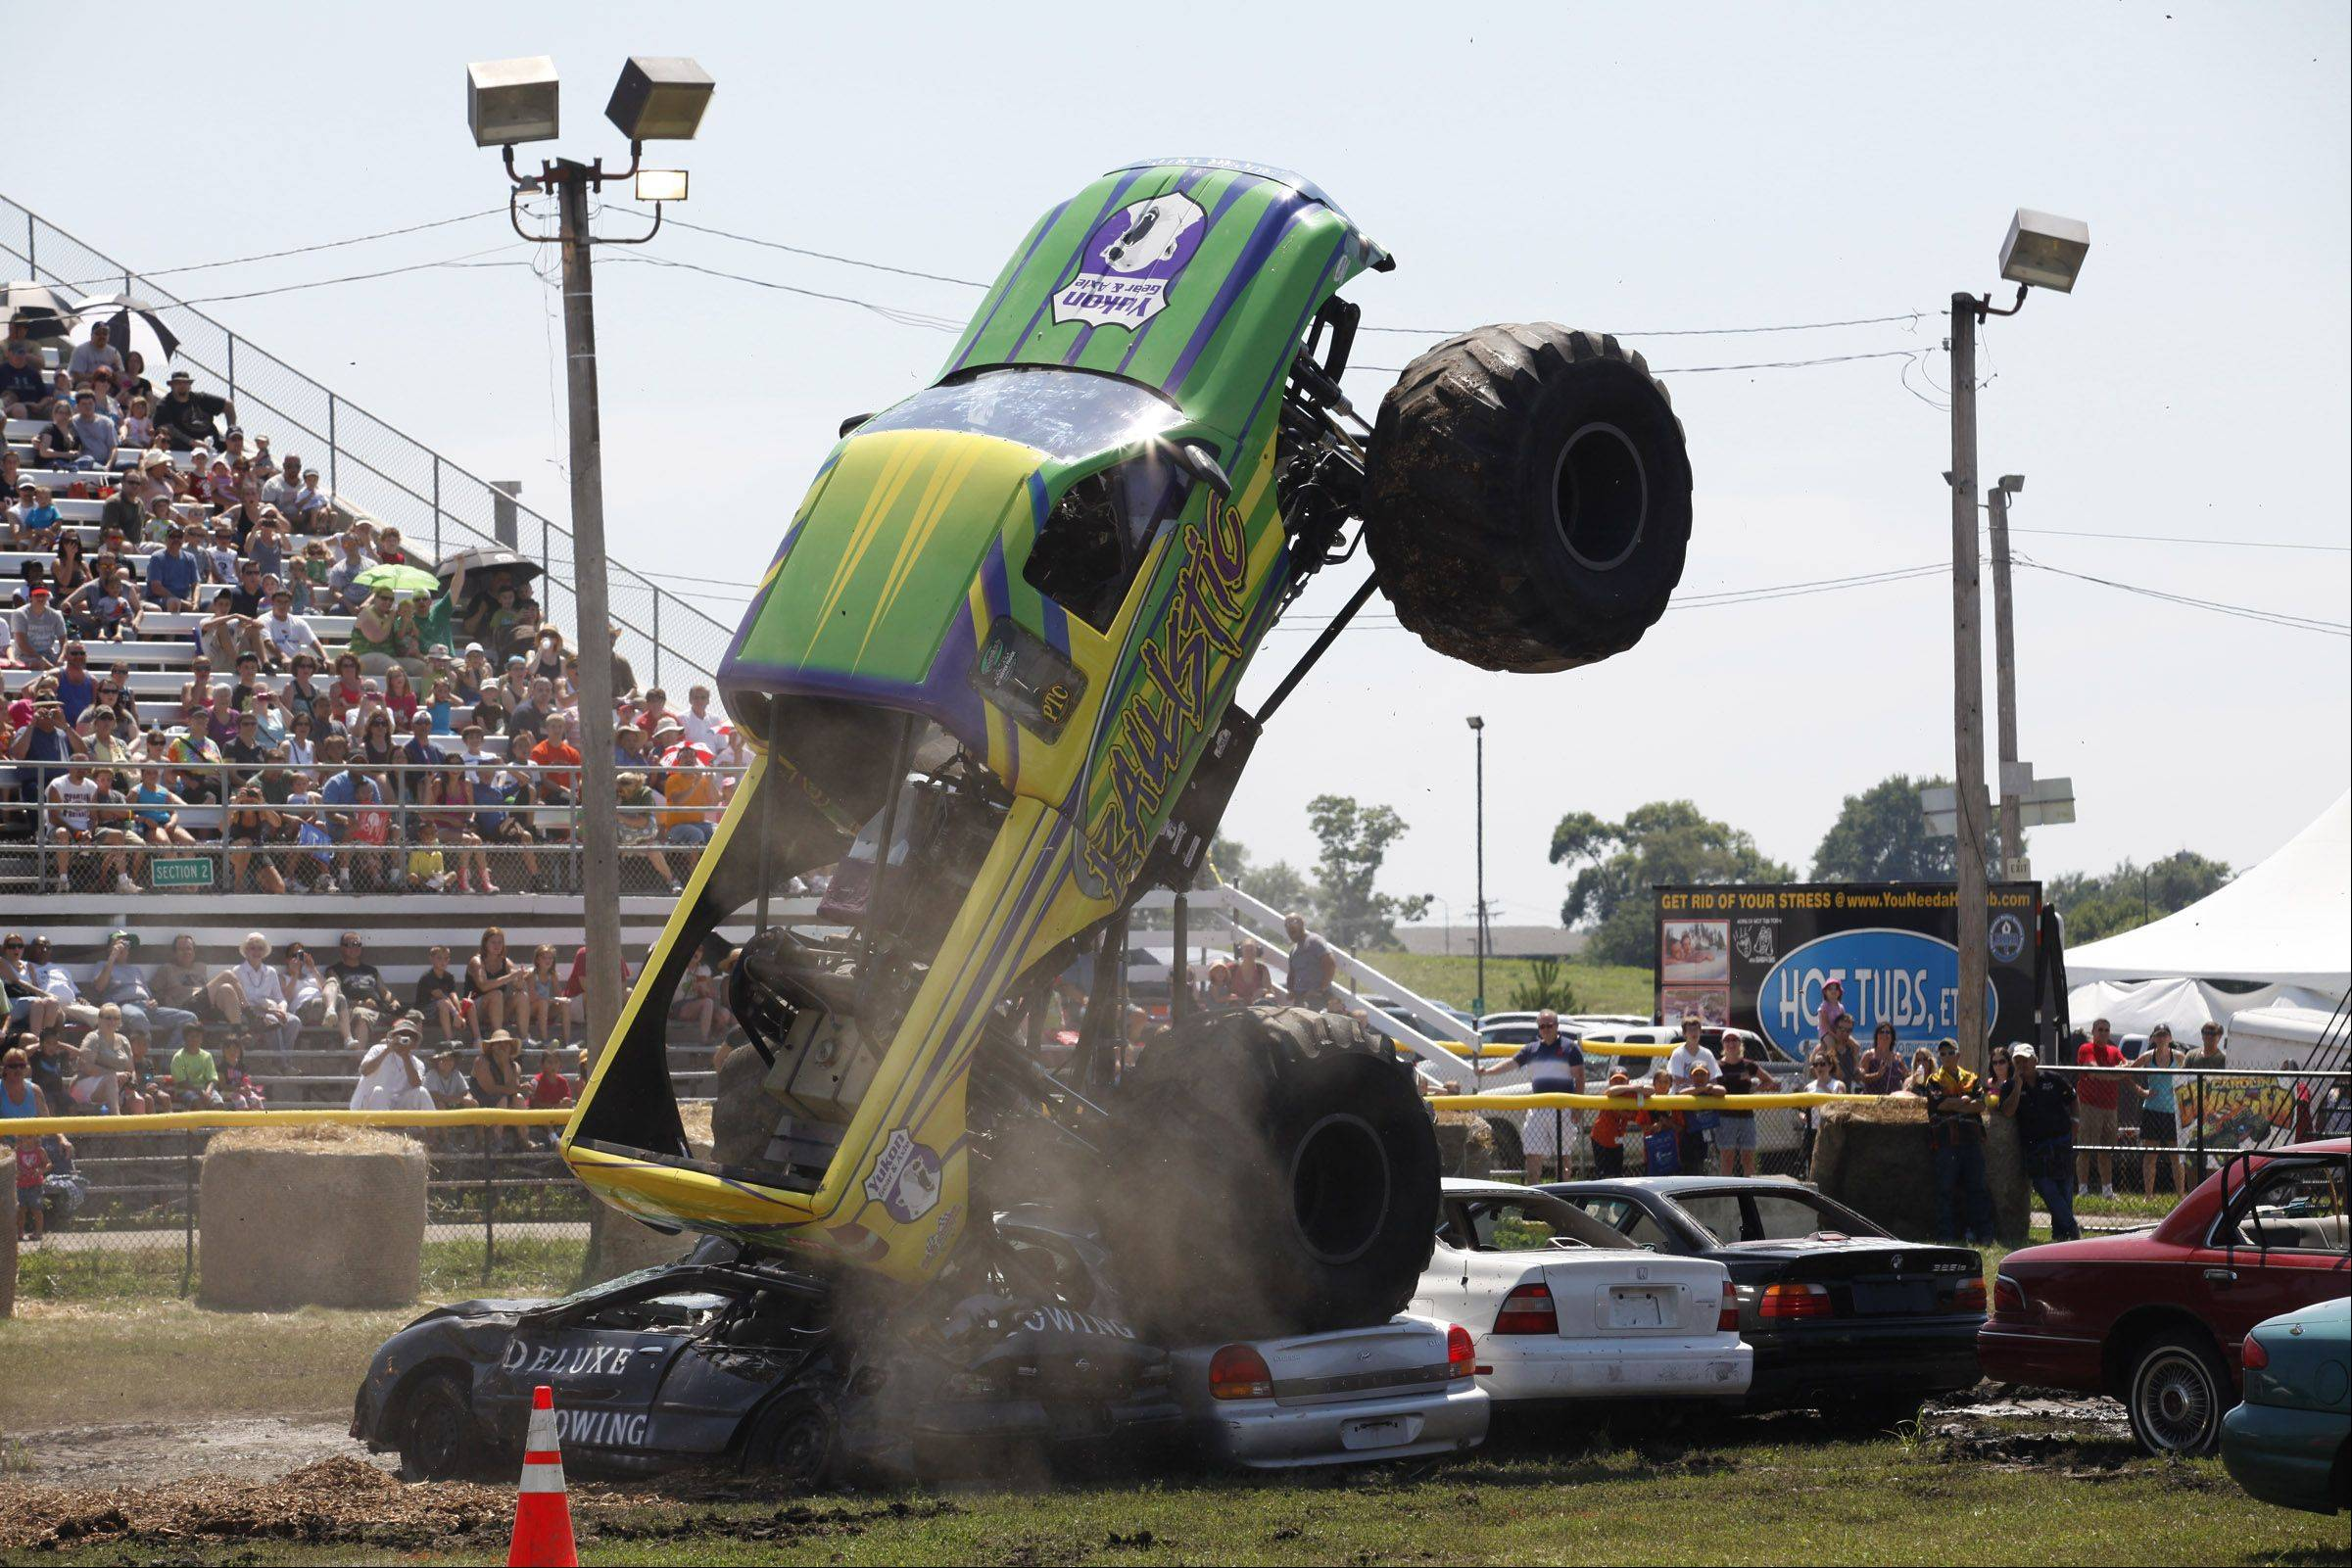 "Monster truck ""Ballistic"" wheelies its self up over a line of cars as the crowd watches from the grandstands at the DuPage County Fair in Wheaton. Saturday July 30th 2011."